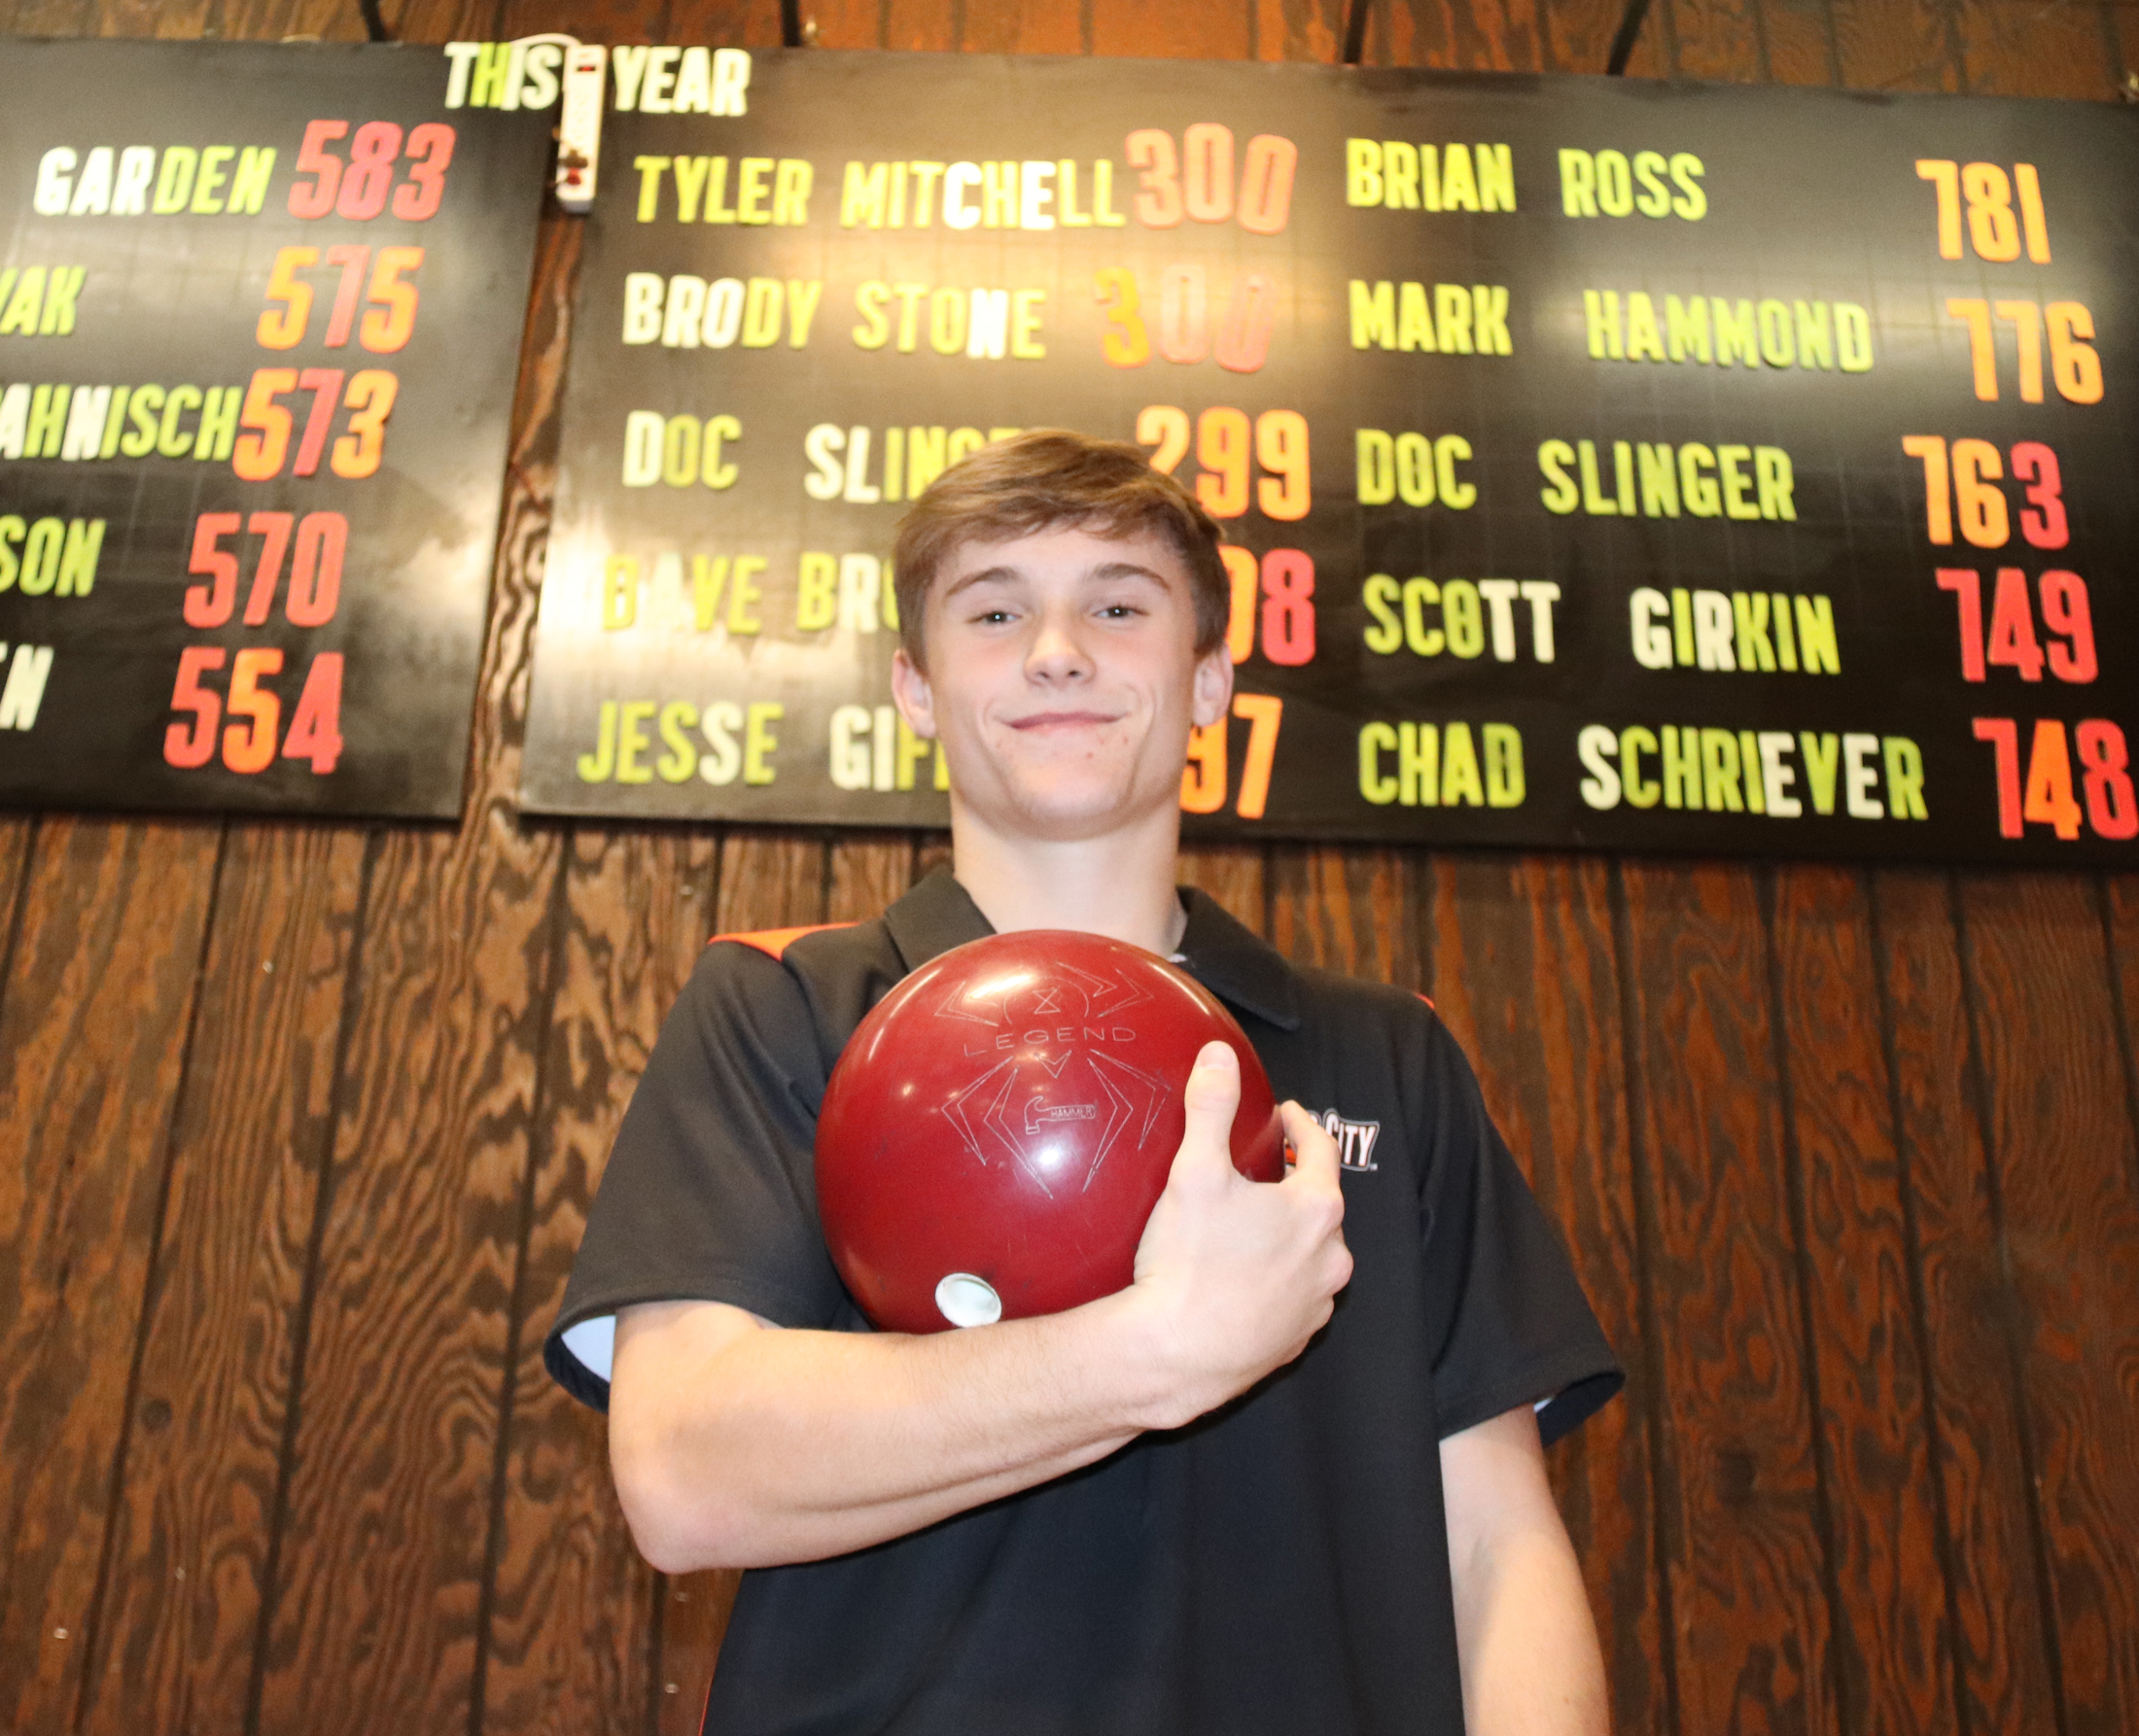 Cael Bohlen's near-perfect 299 leads to individual, team records